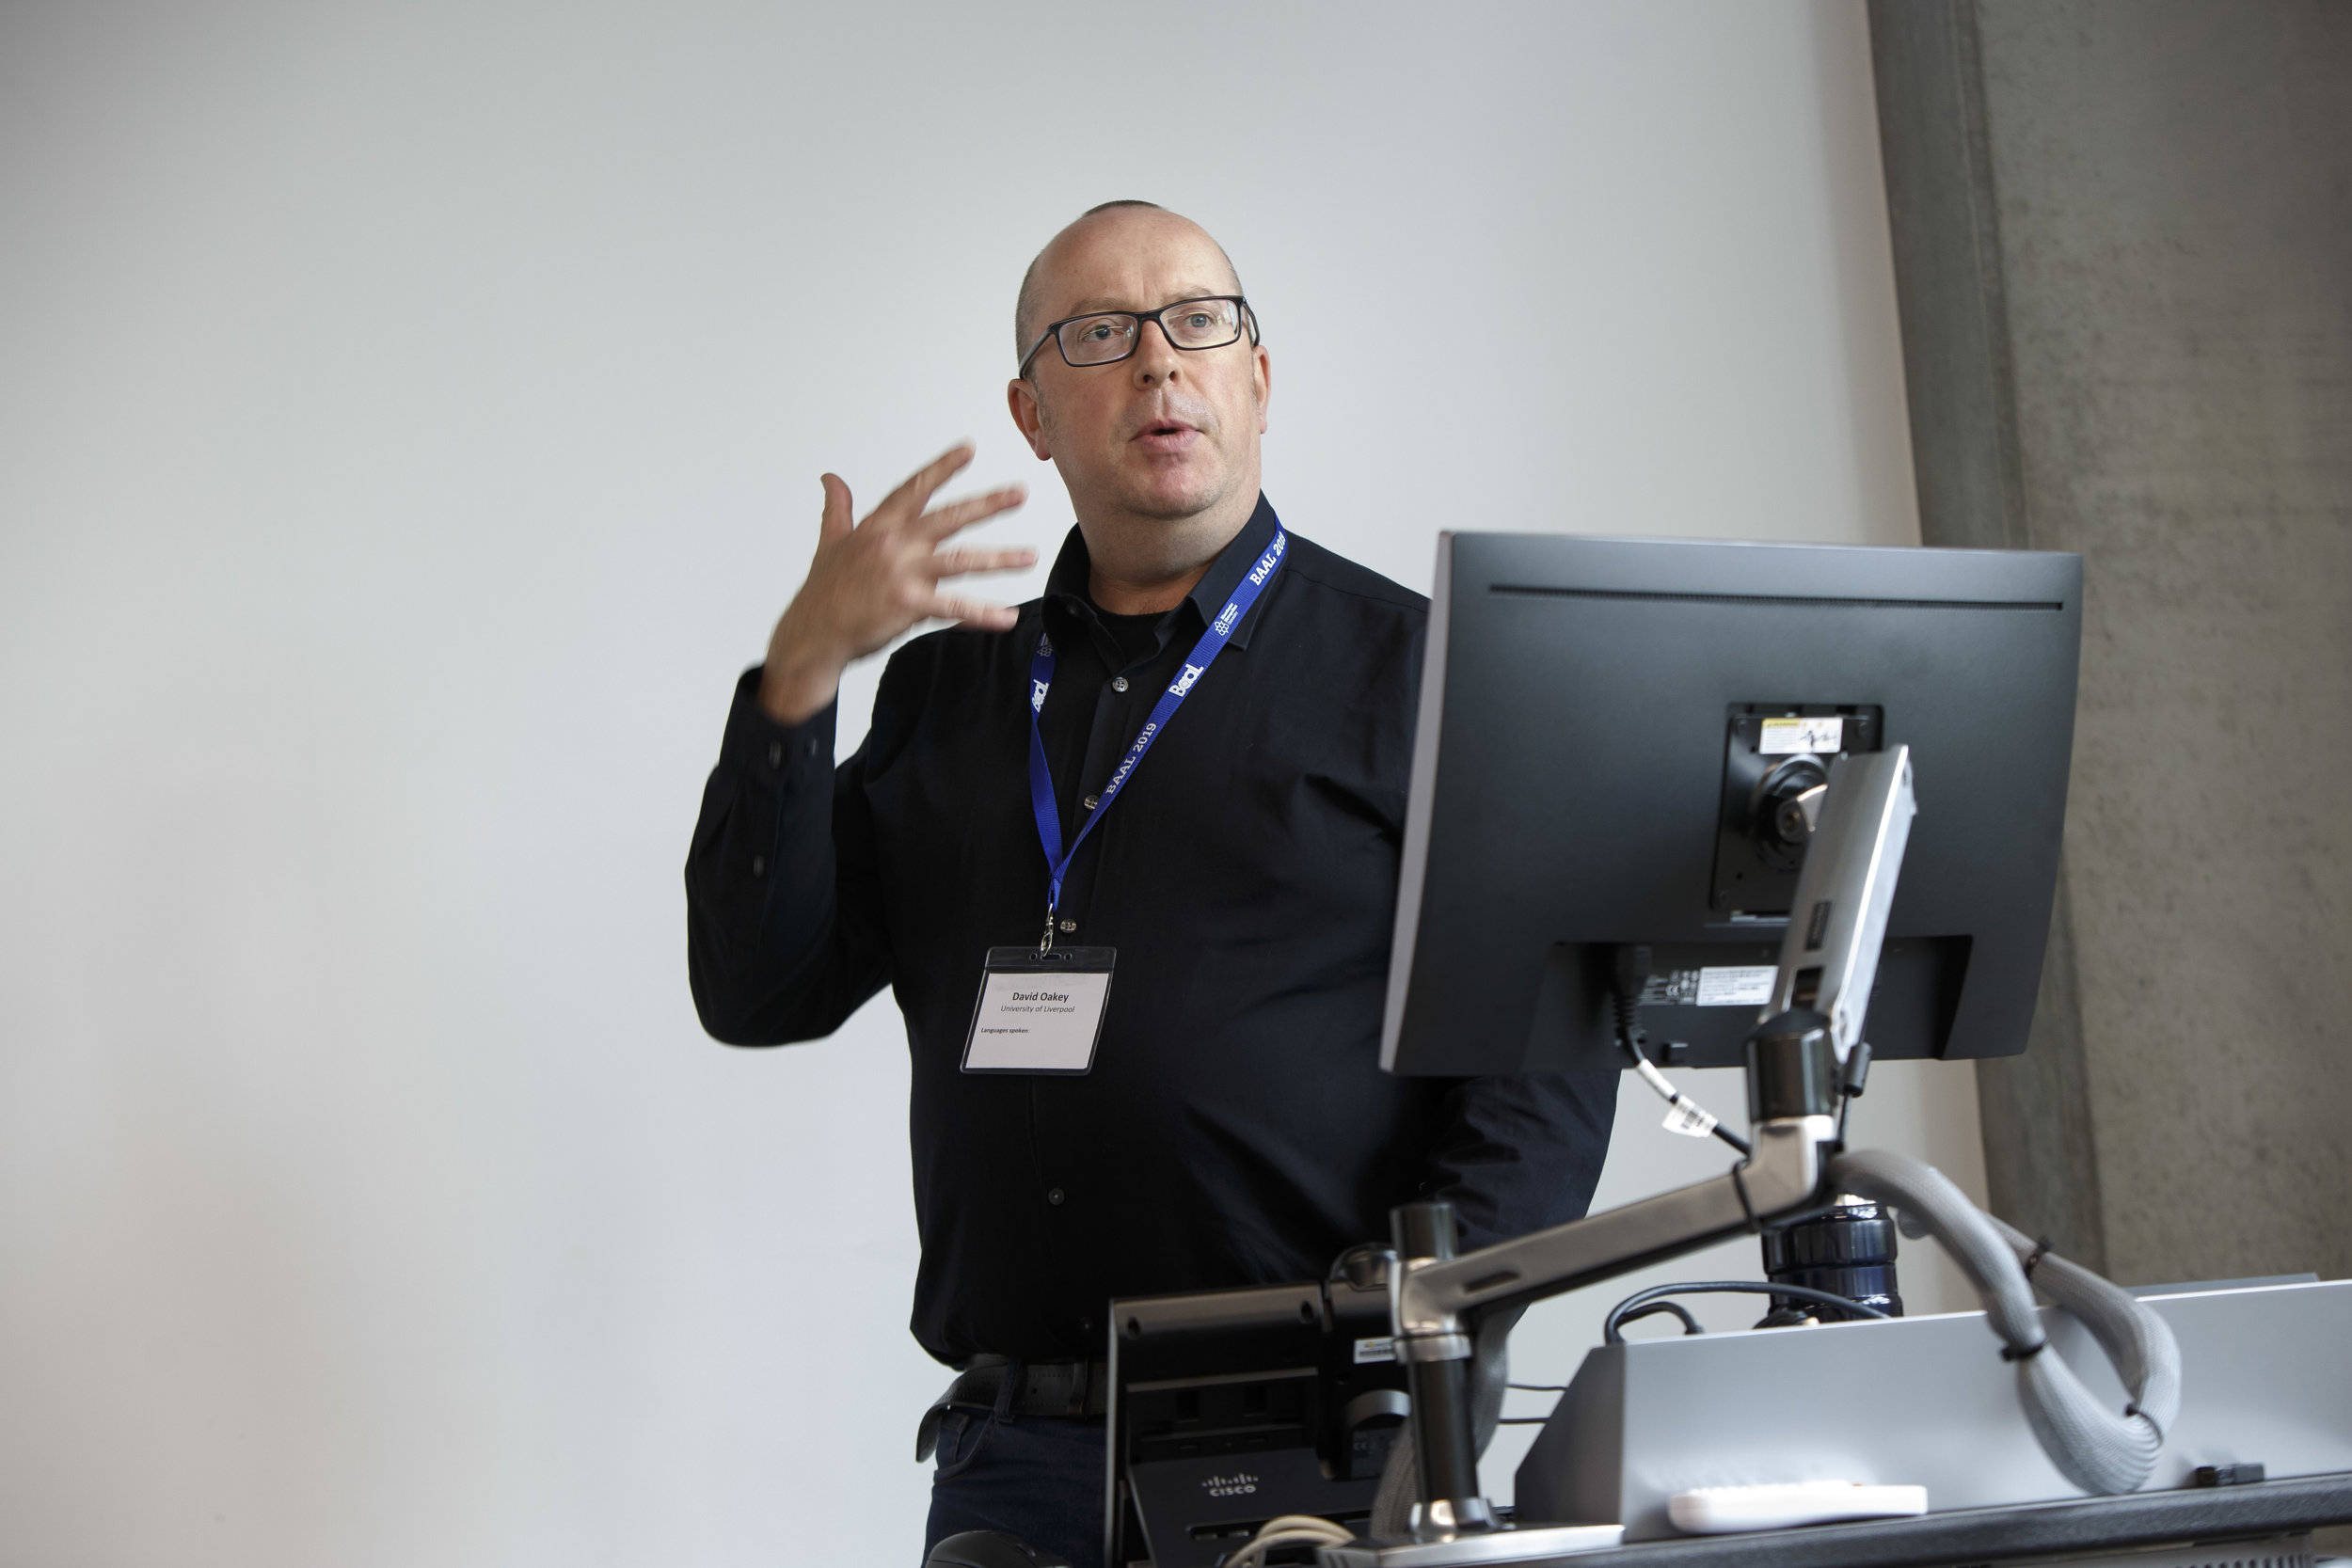 Photograph taken at a University conference, Manchester